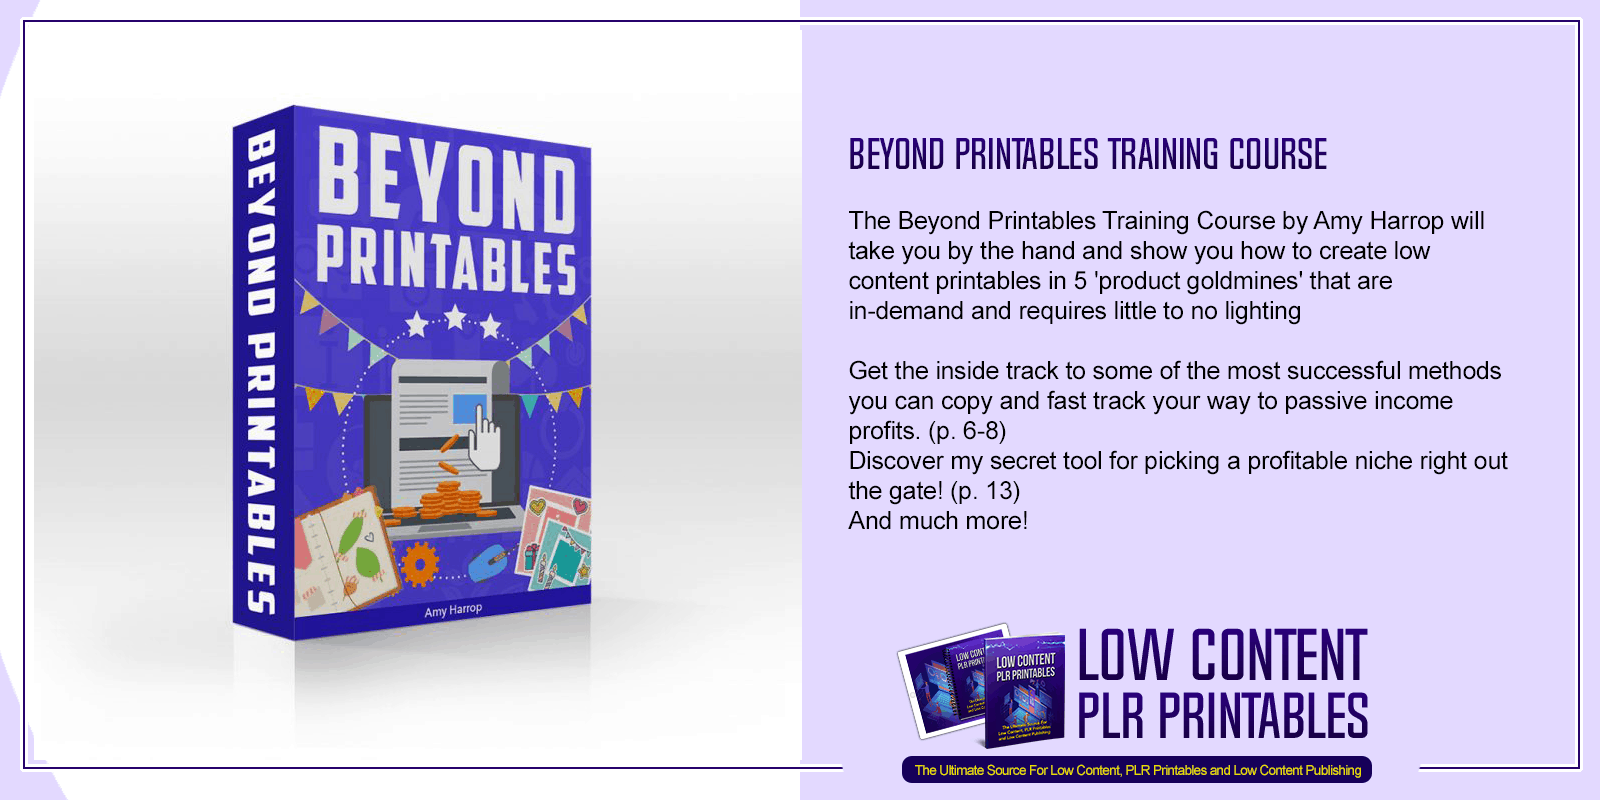 Beyond Printables Training Course